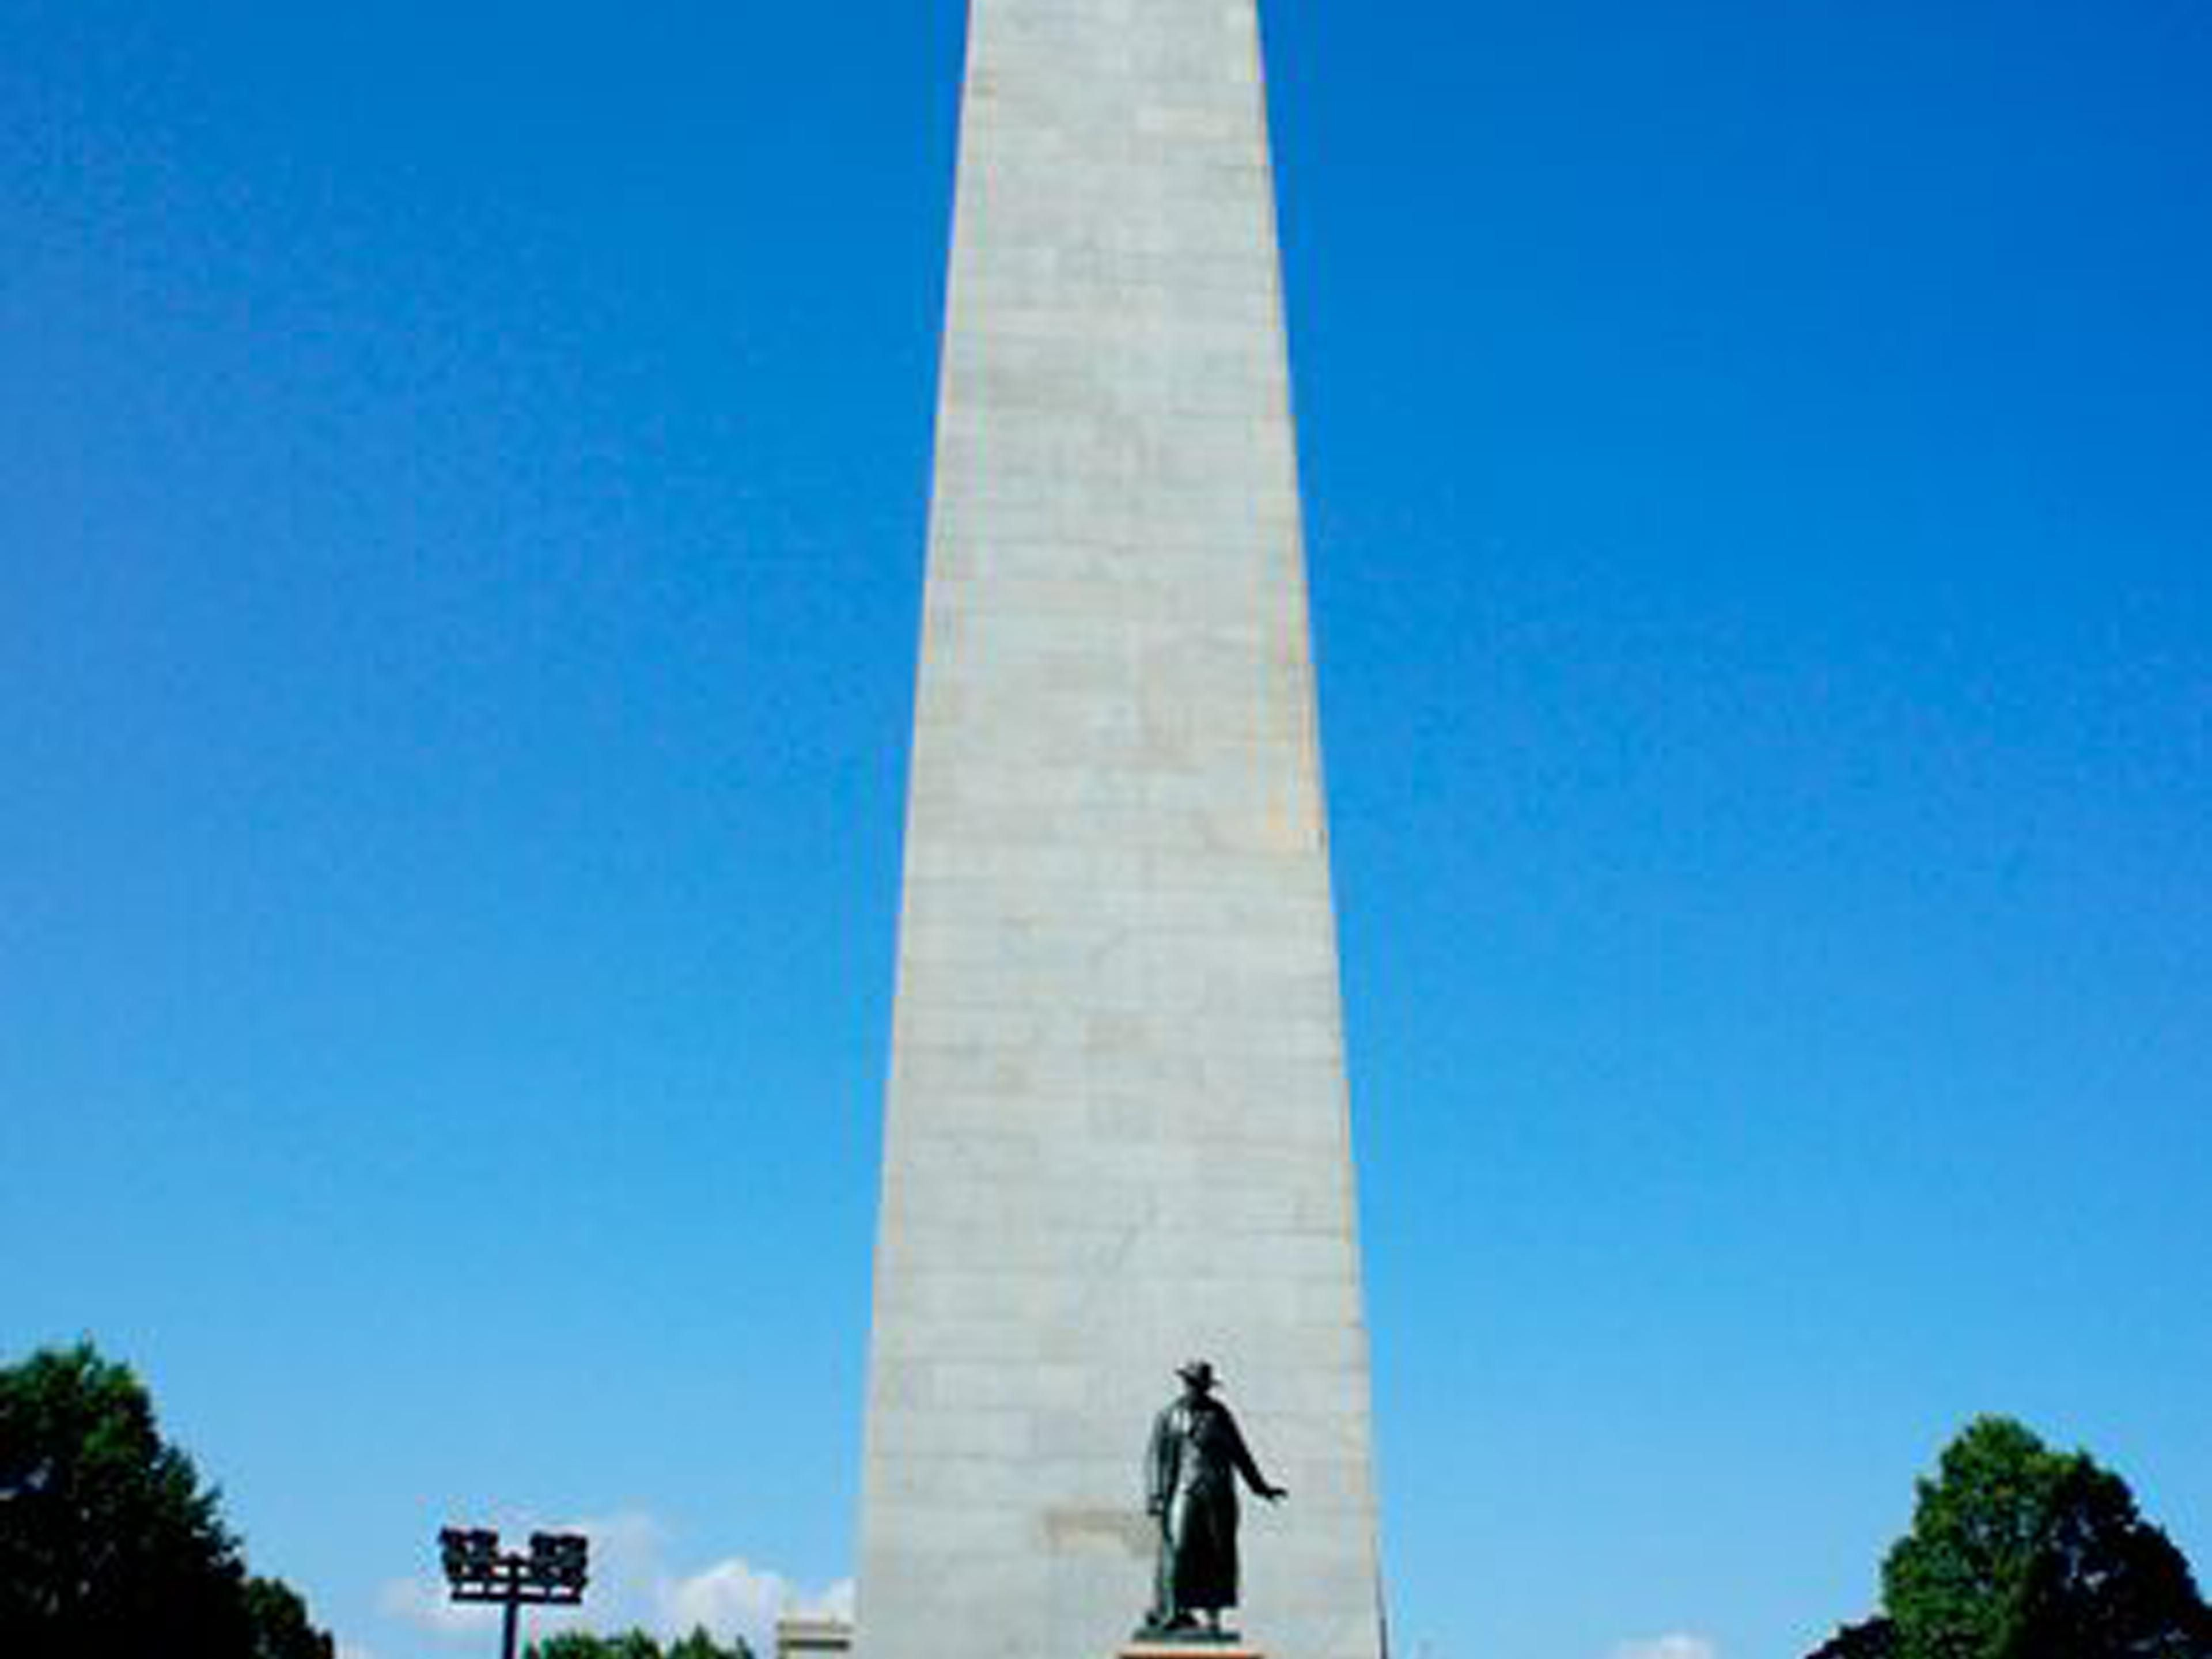 The historic Bunker Hill Monument is just five minutes away.